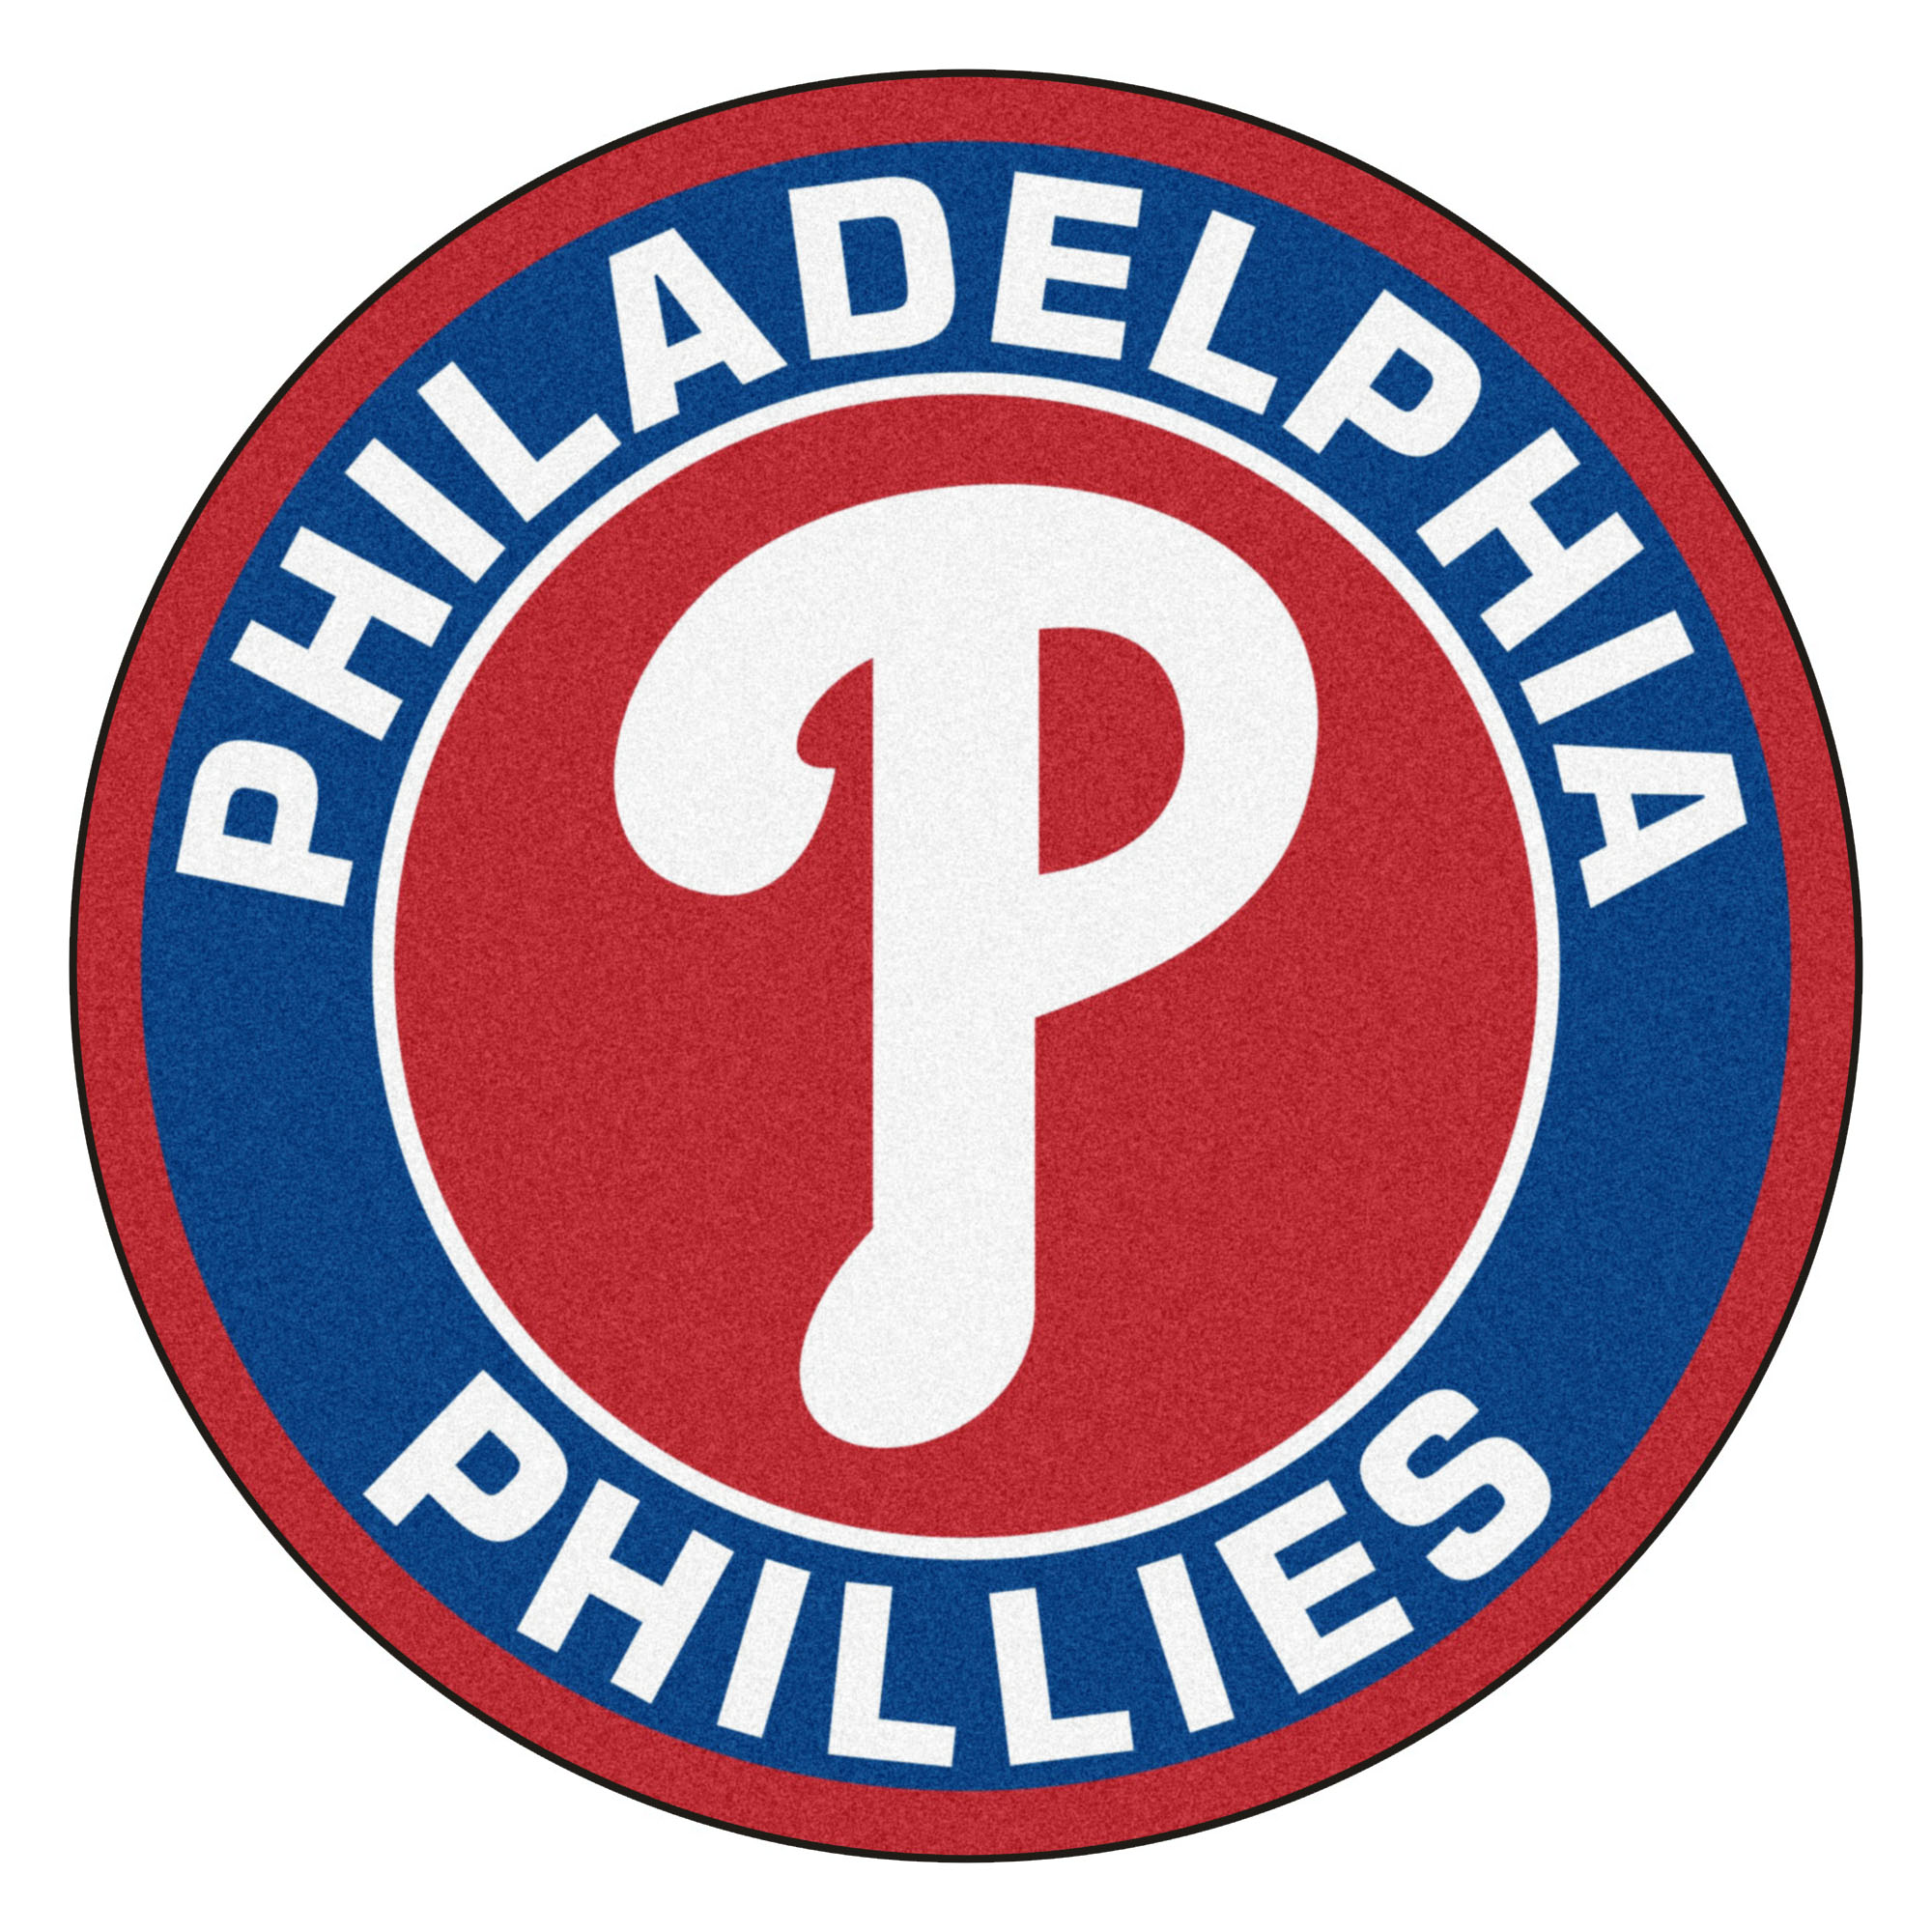 Phillies Logo Images Free Download Best Phillies Logo